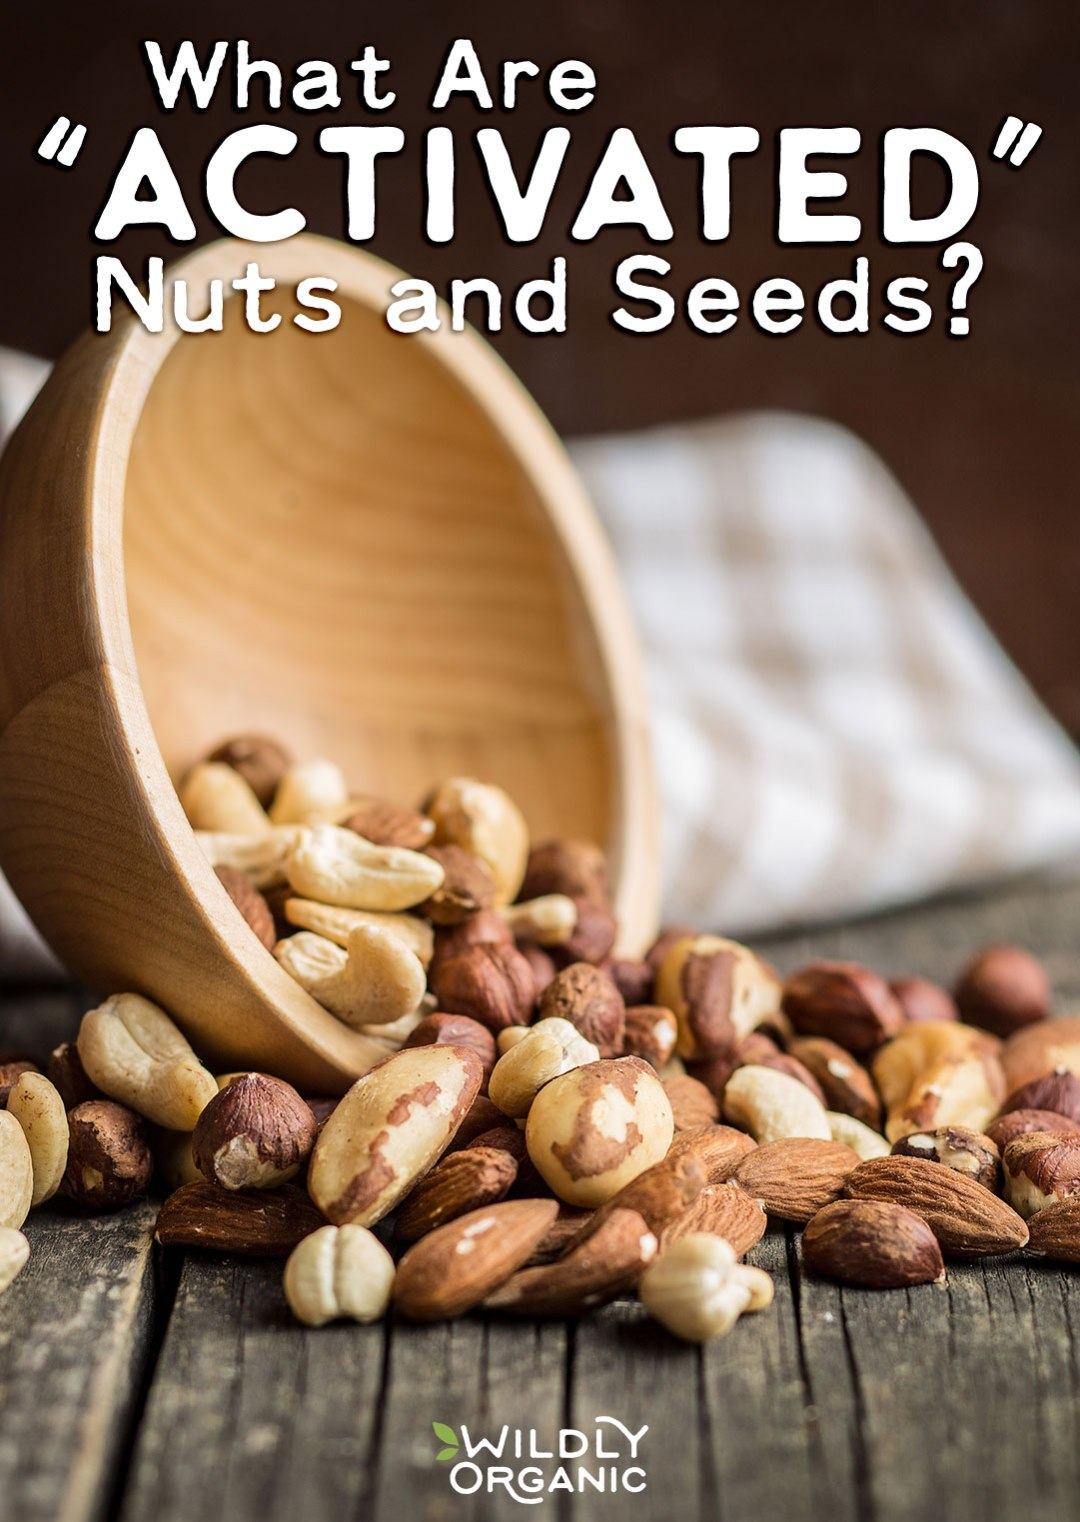 """Since plants can't run from predators like animals can, they contain a stealthy compound to protect their seeds so they can survive another generation: phytic acid. Nuts are a high source of phytic acid, unless you know how to """"activate"""" your nuts/seeds. What are """"activated"""" nuts and seeds? Find out here!"""